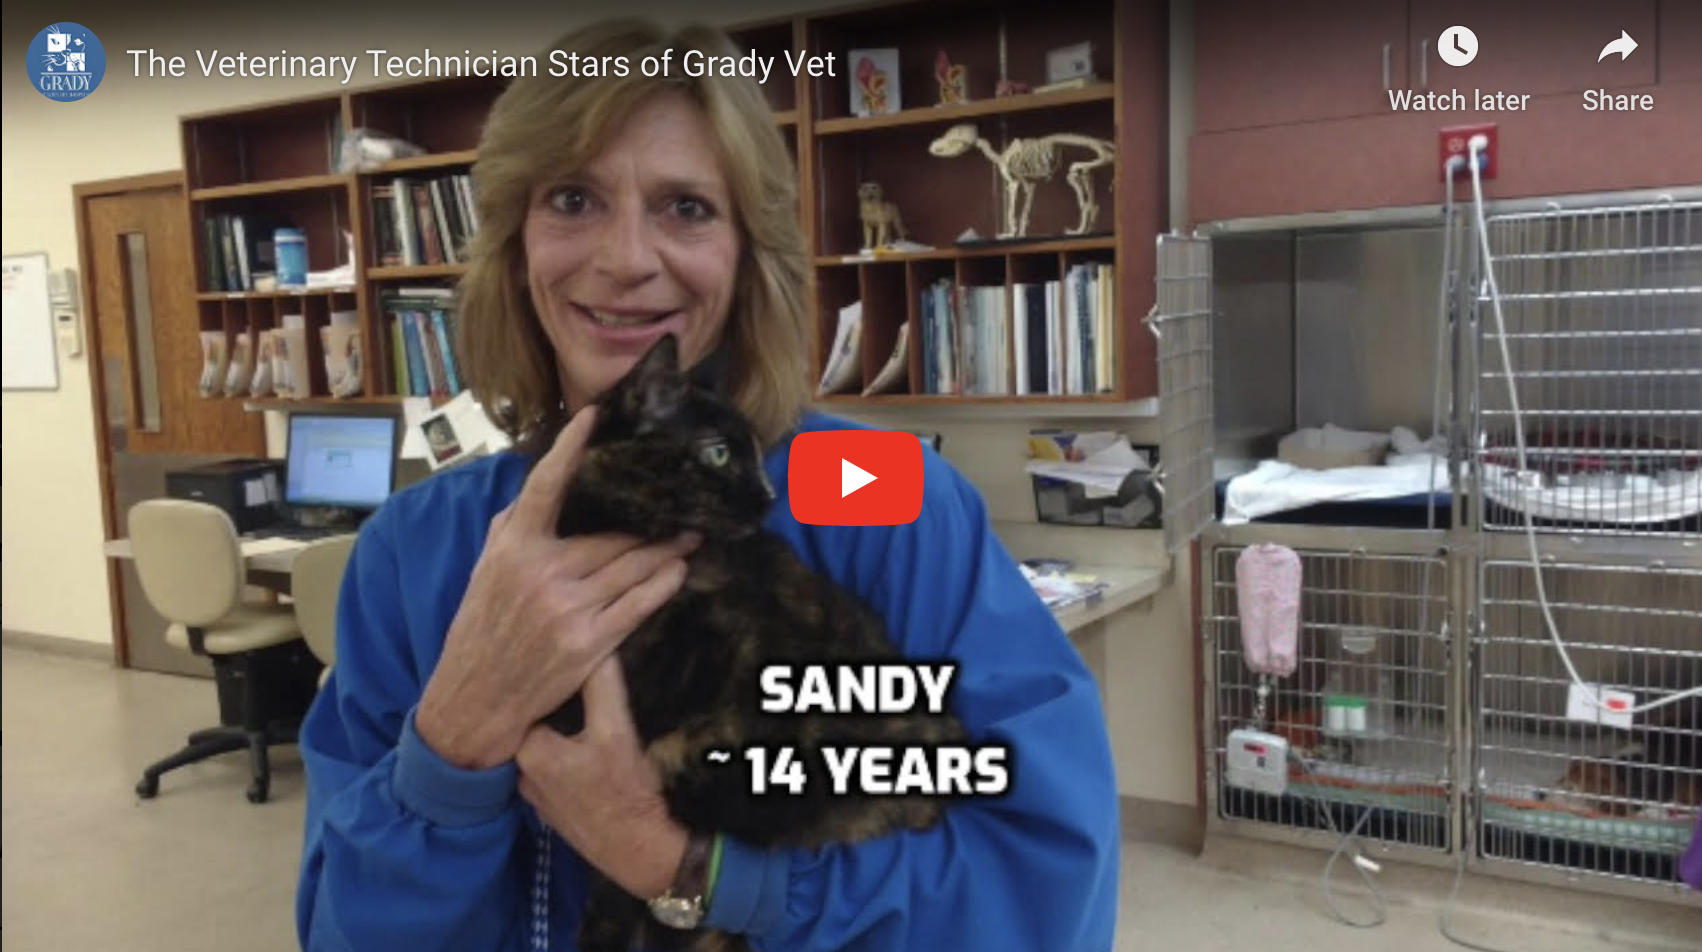 The Veterinary Technician Stars of Grady Vet